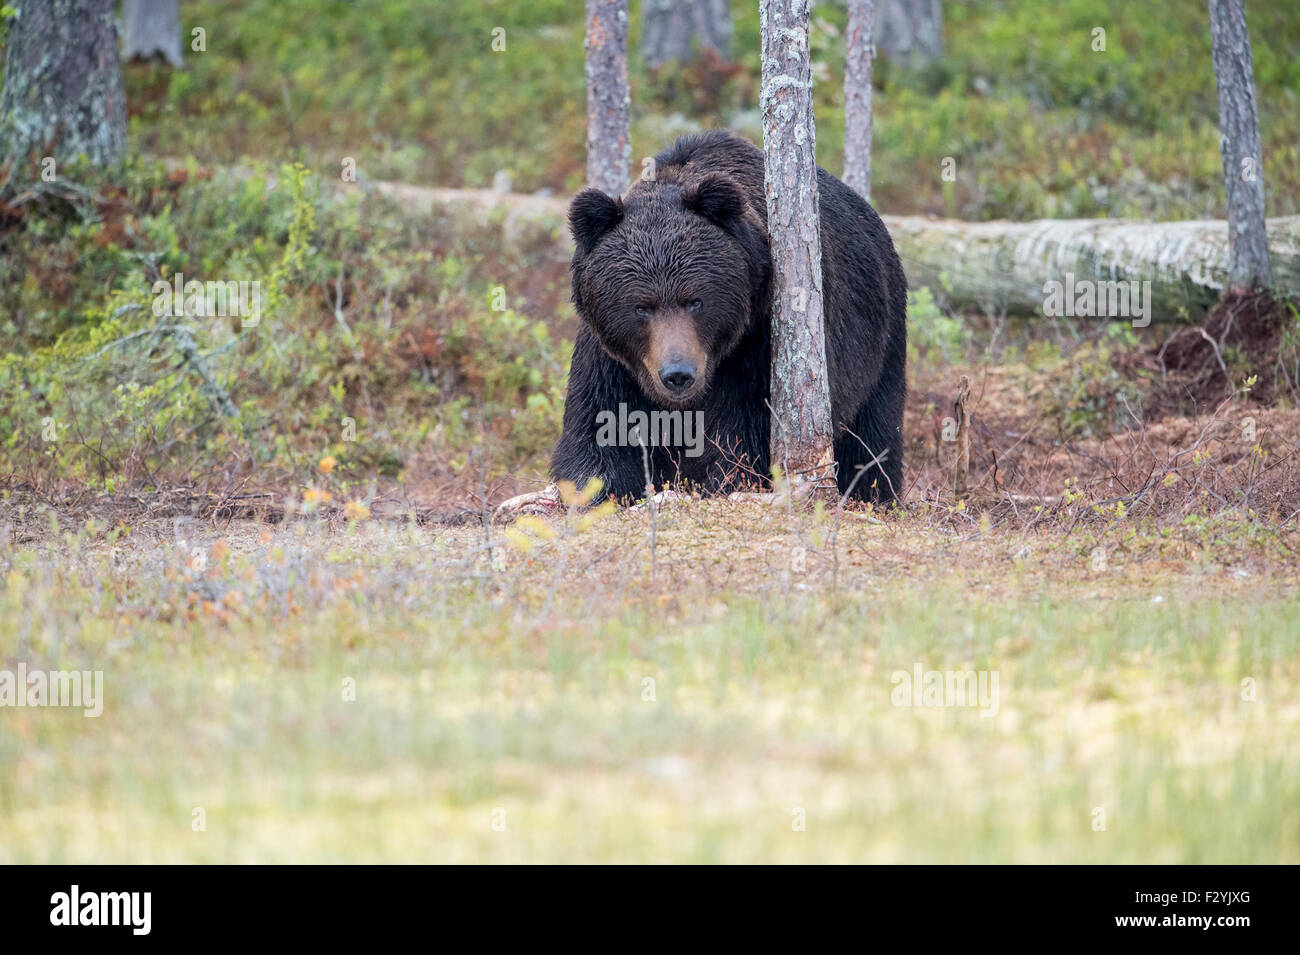 Eurasian Brown Bear Ursus arctos arctos emerges from the wild forests of Finland, close to the Russian border. Stock Photo